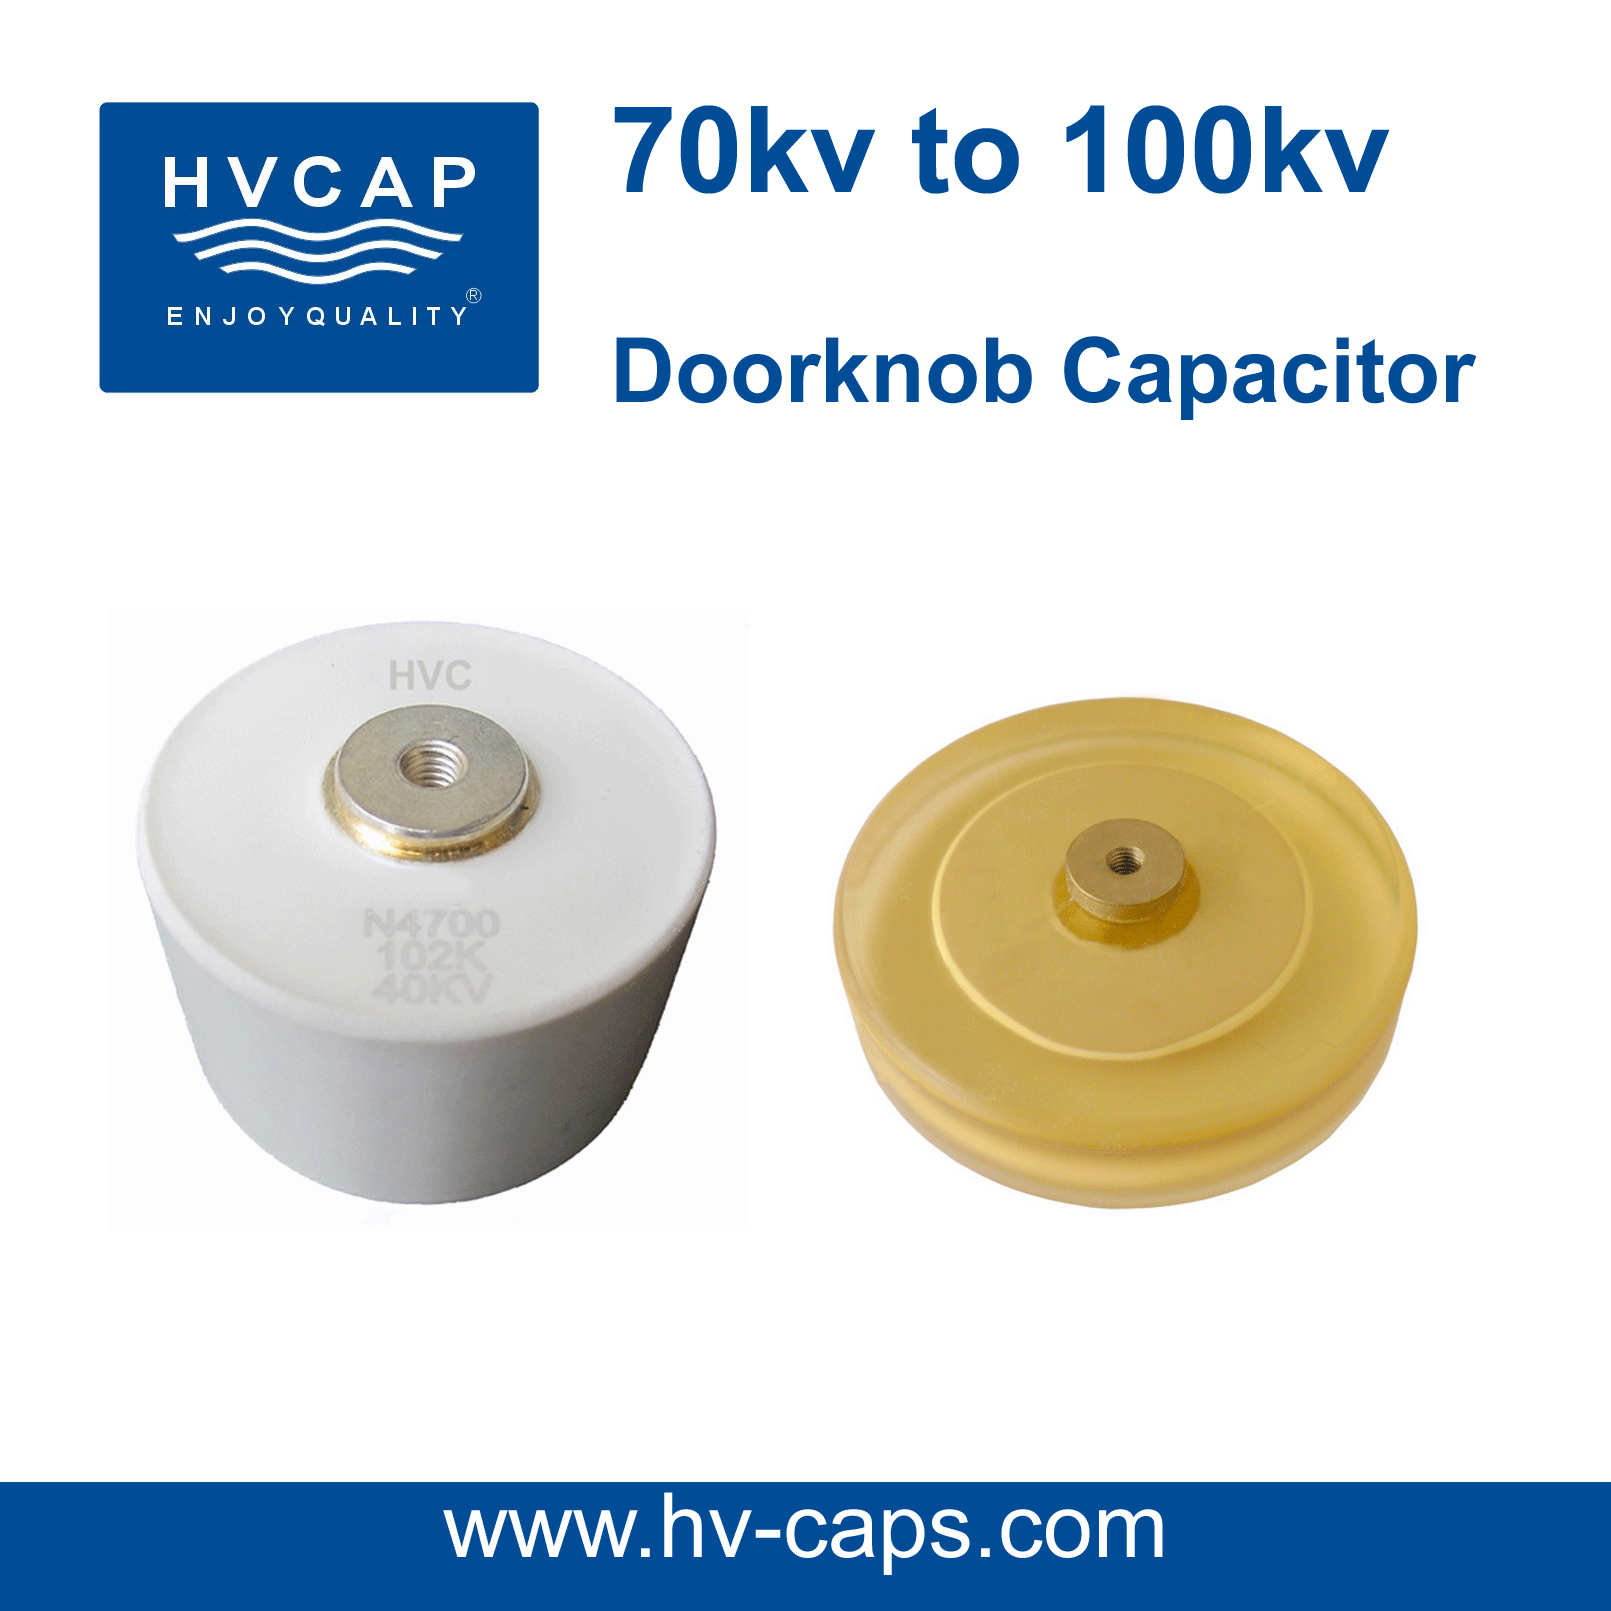 High Voltage Ceramic Doorknob Capacitor 70kv-100kv specifica